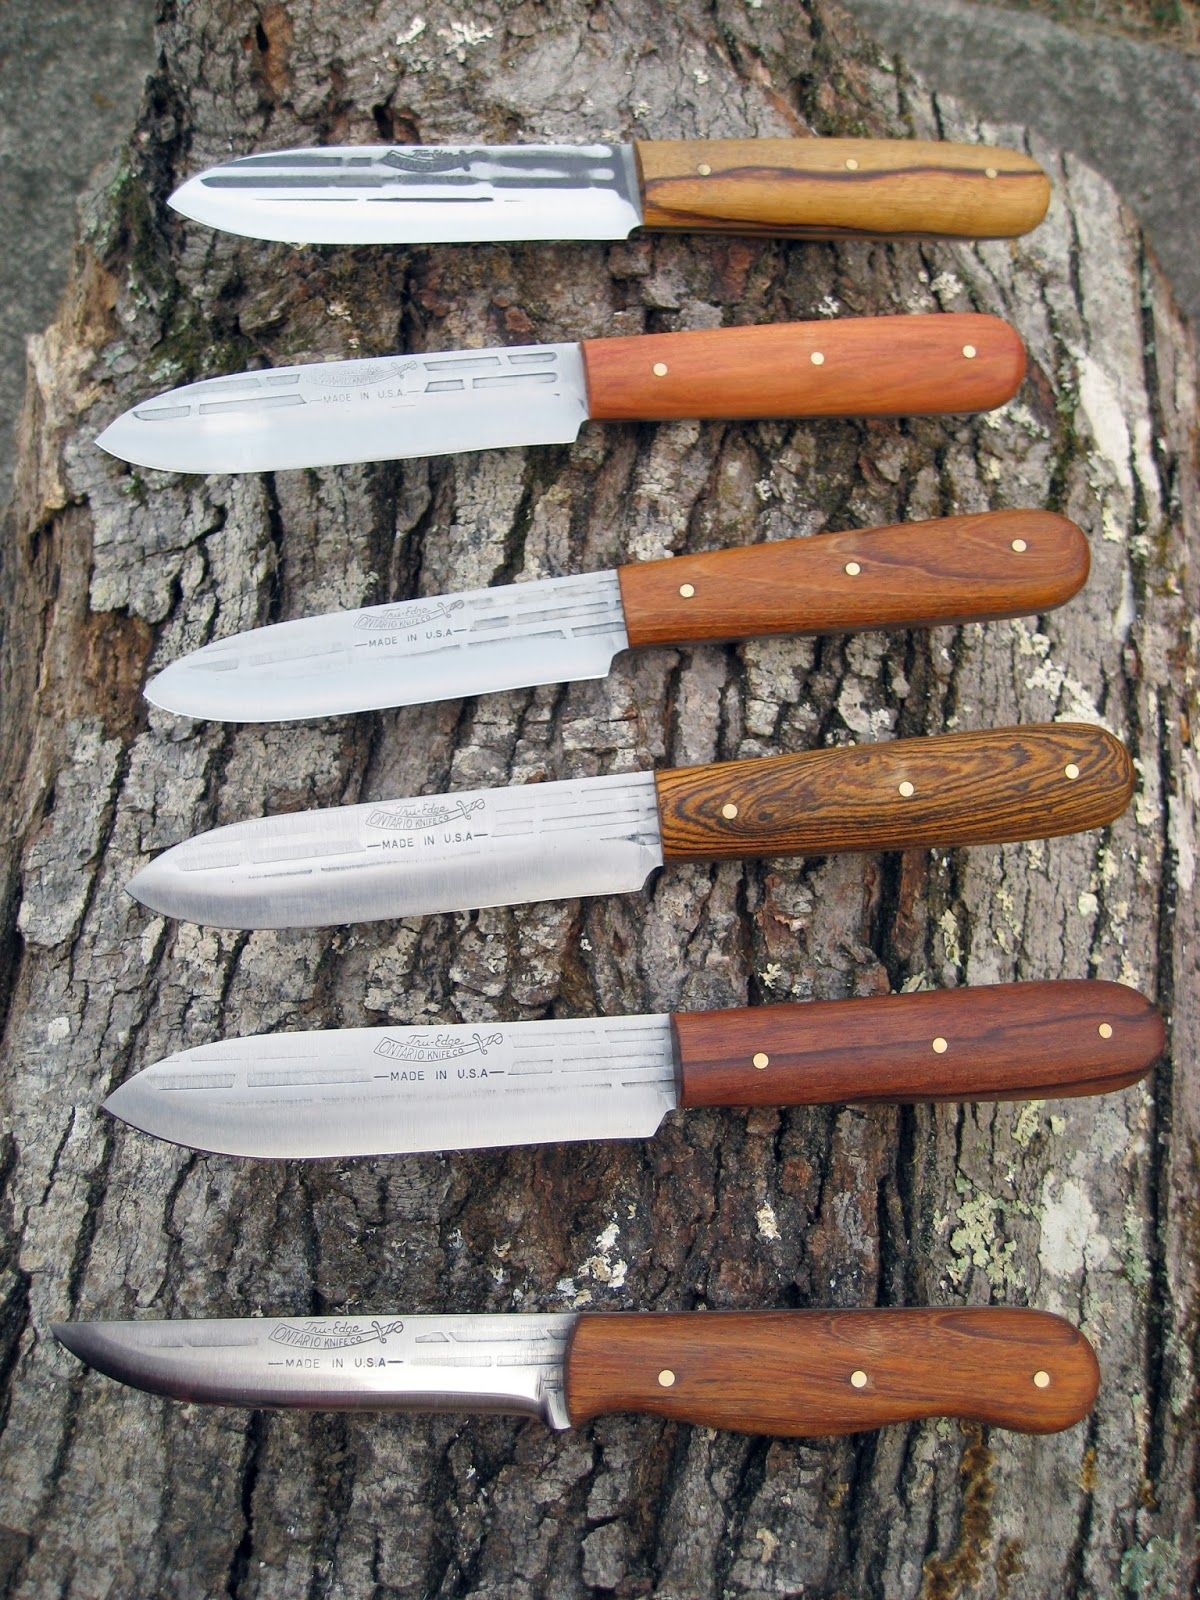 Modified Old Hickory S Page 11 Bushcraft Pinterest